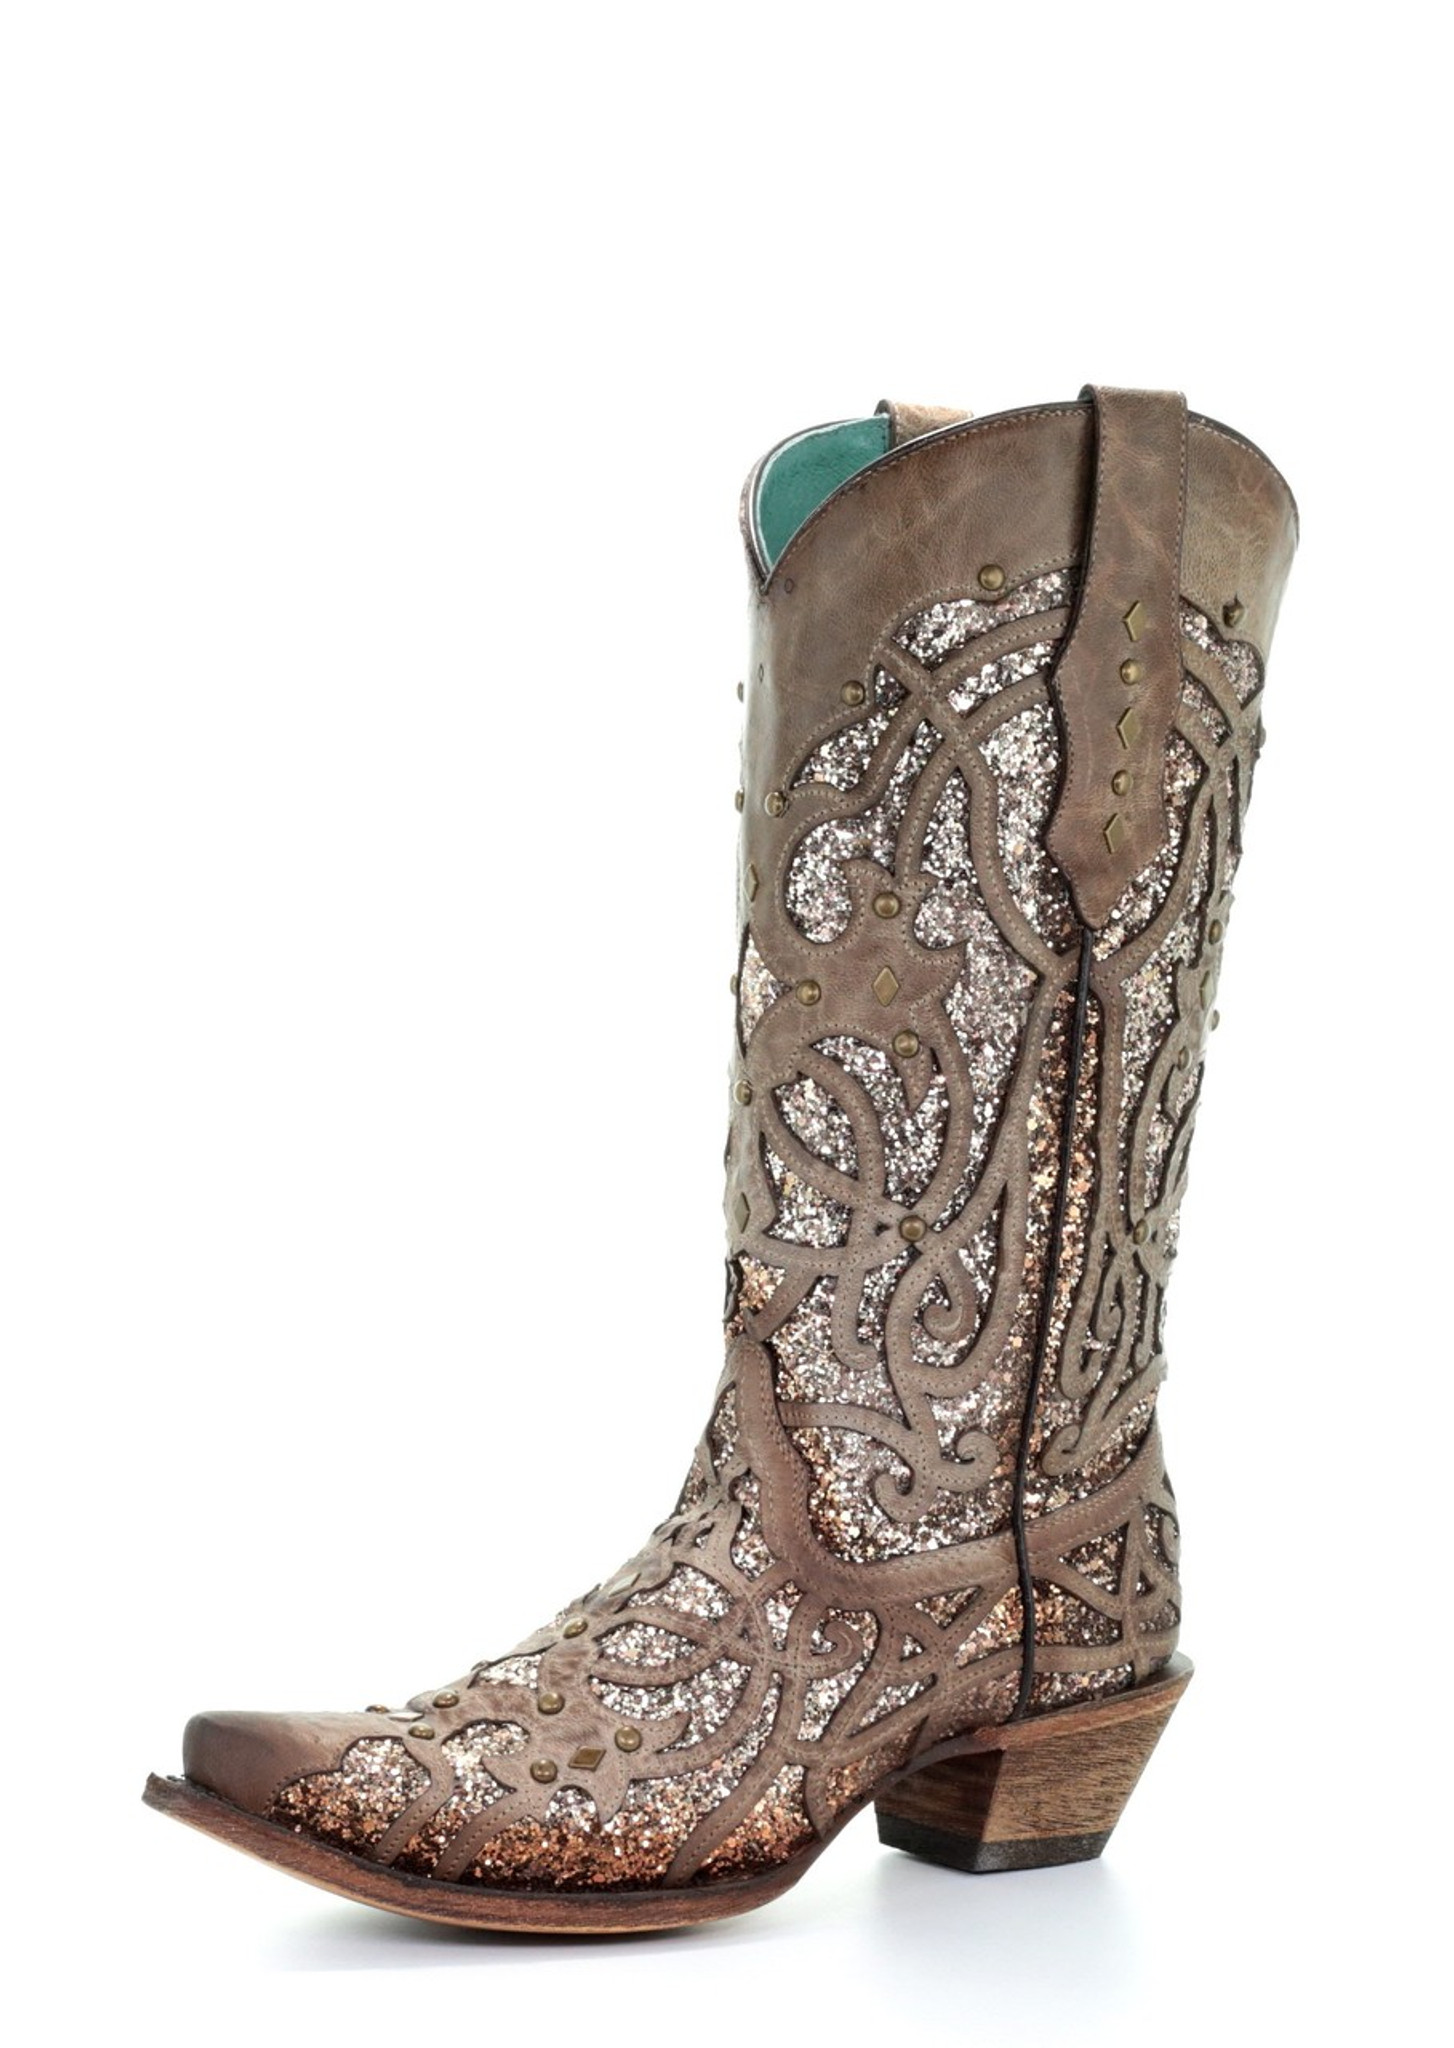 d6fb2f59d56 Women's Corral Boots, Brown Snip Toe with Glitter Inlay and Studs